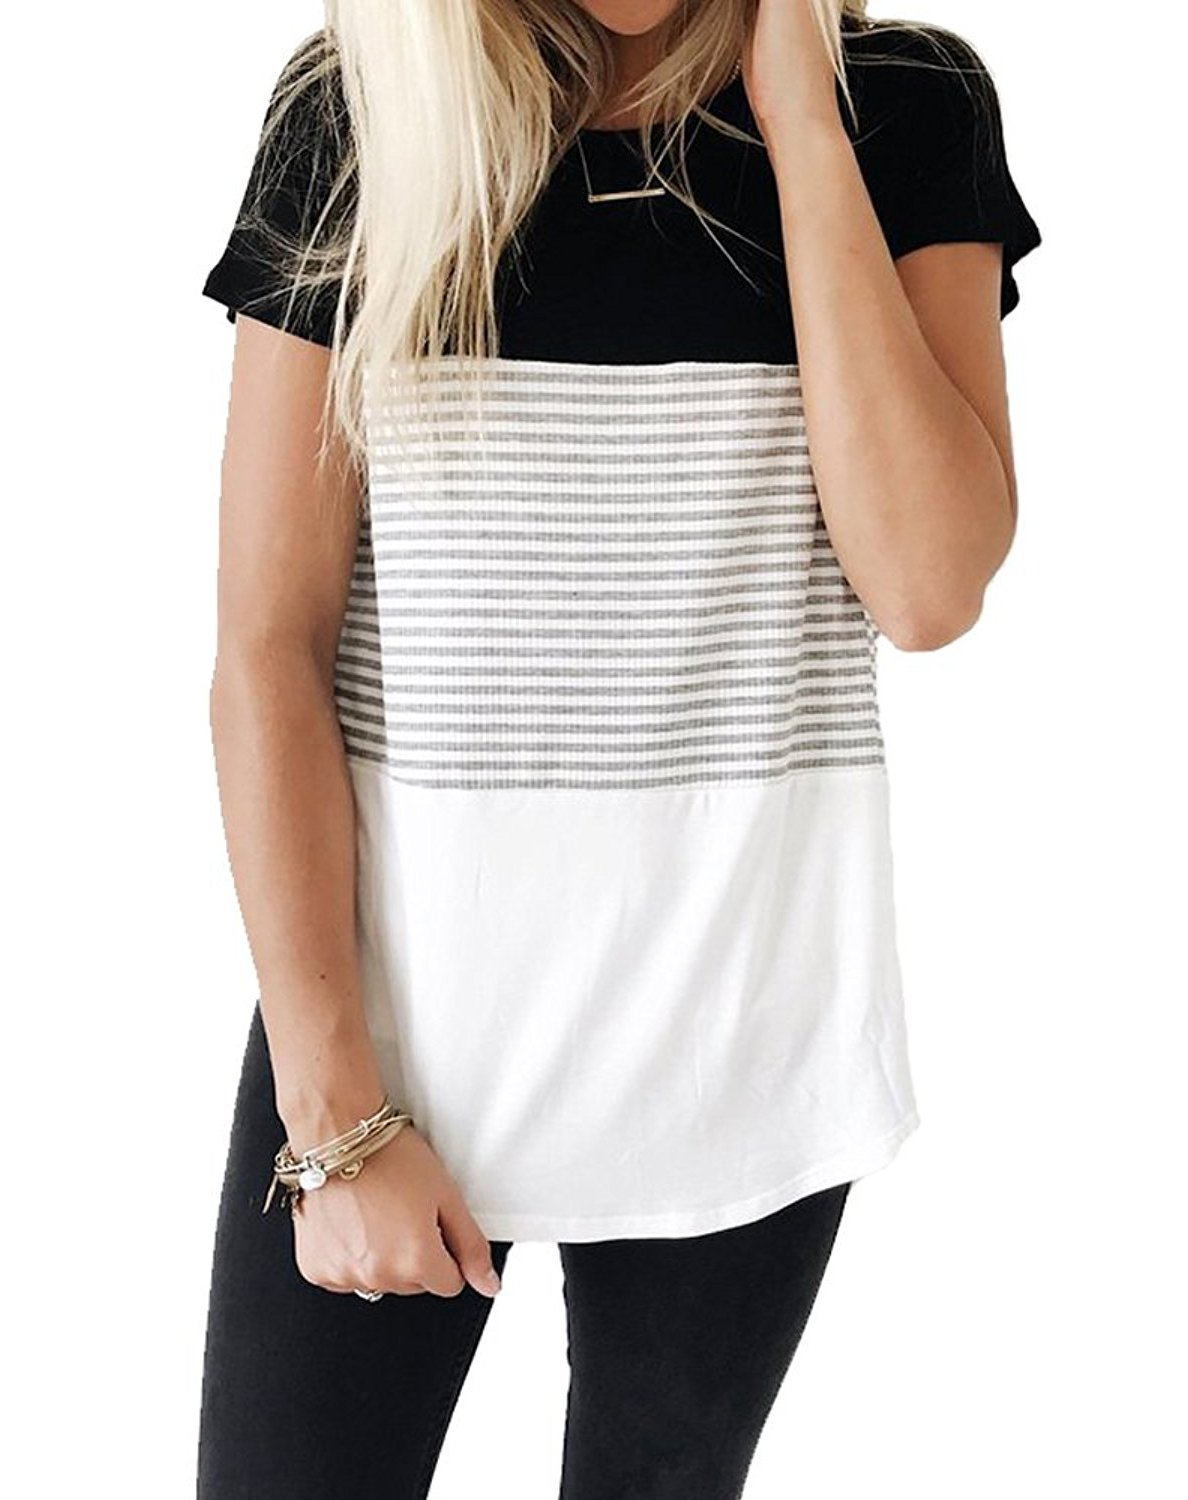 Glomeen Women's Short Sleeve Round Neck Color Block Stripe T-Shirt Tops Casual Blouse